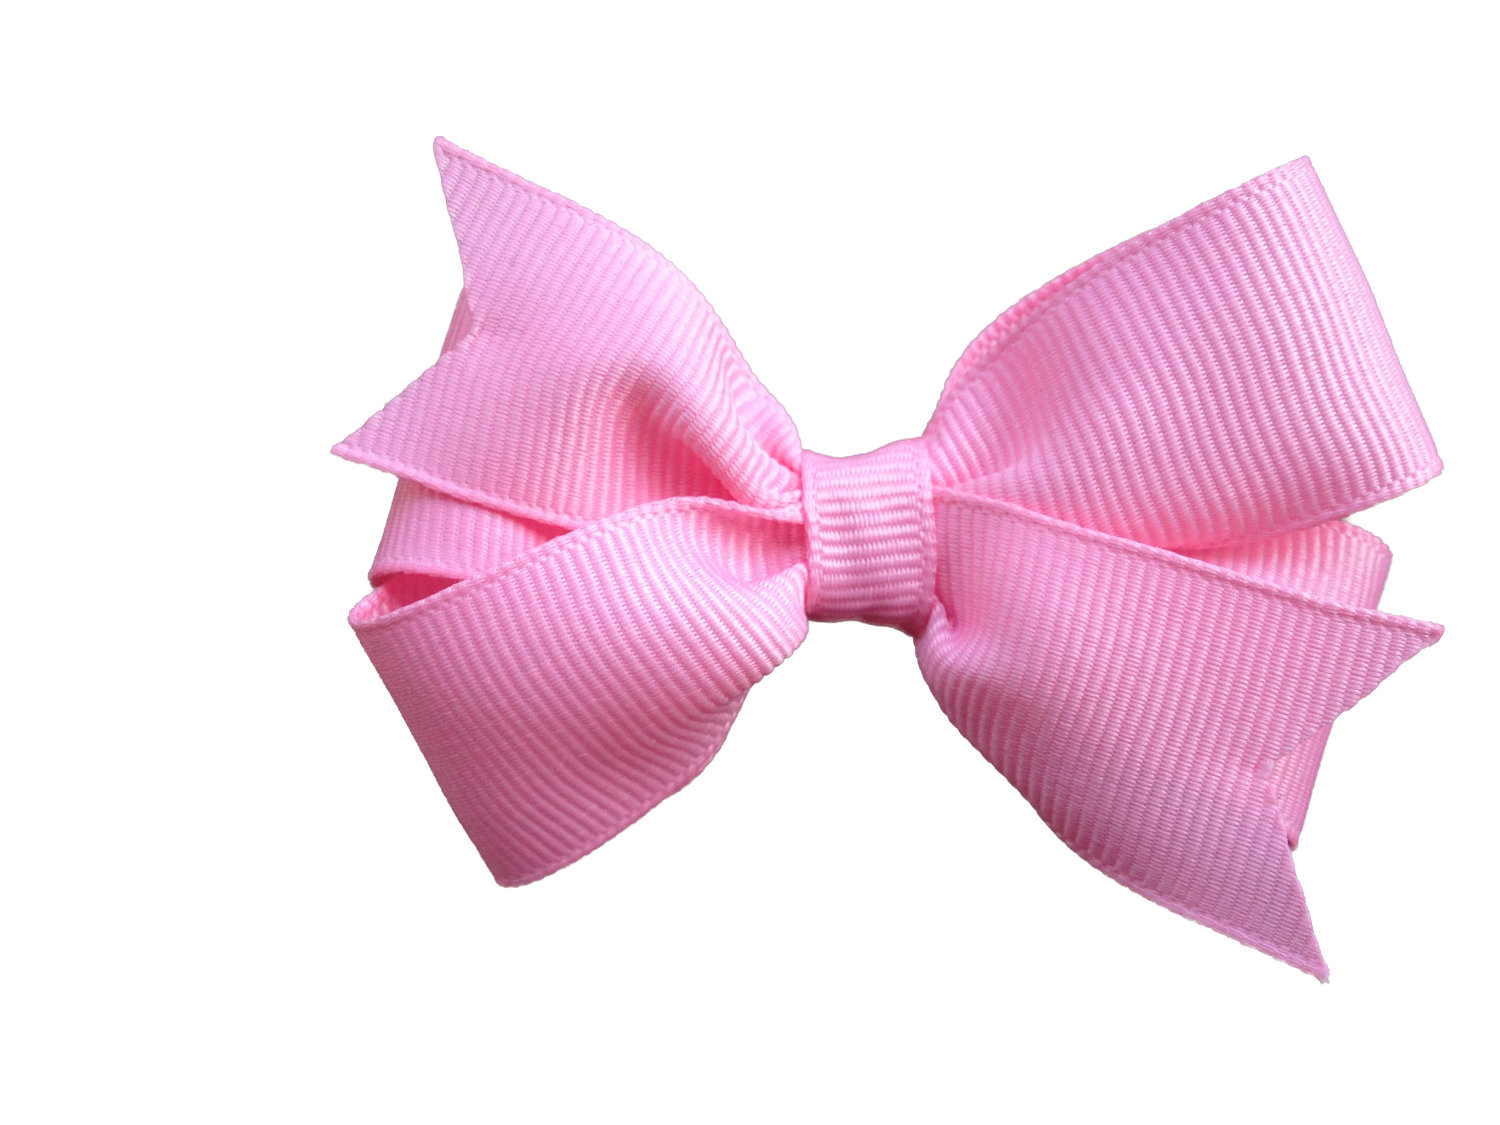 Baby head bow clipart stock 3 inch pink hair bow pink bow baby bow by BrownEyedBowtique - Clip ... stock